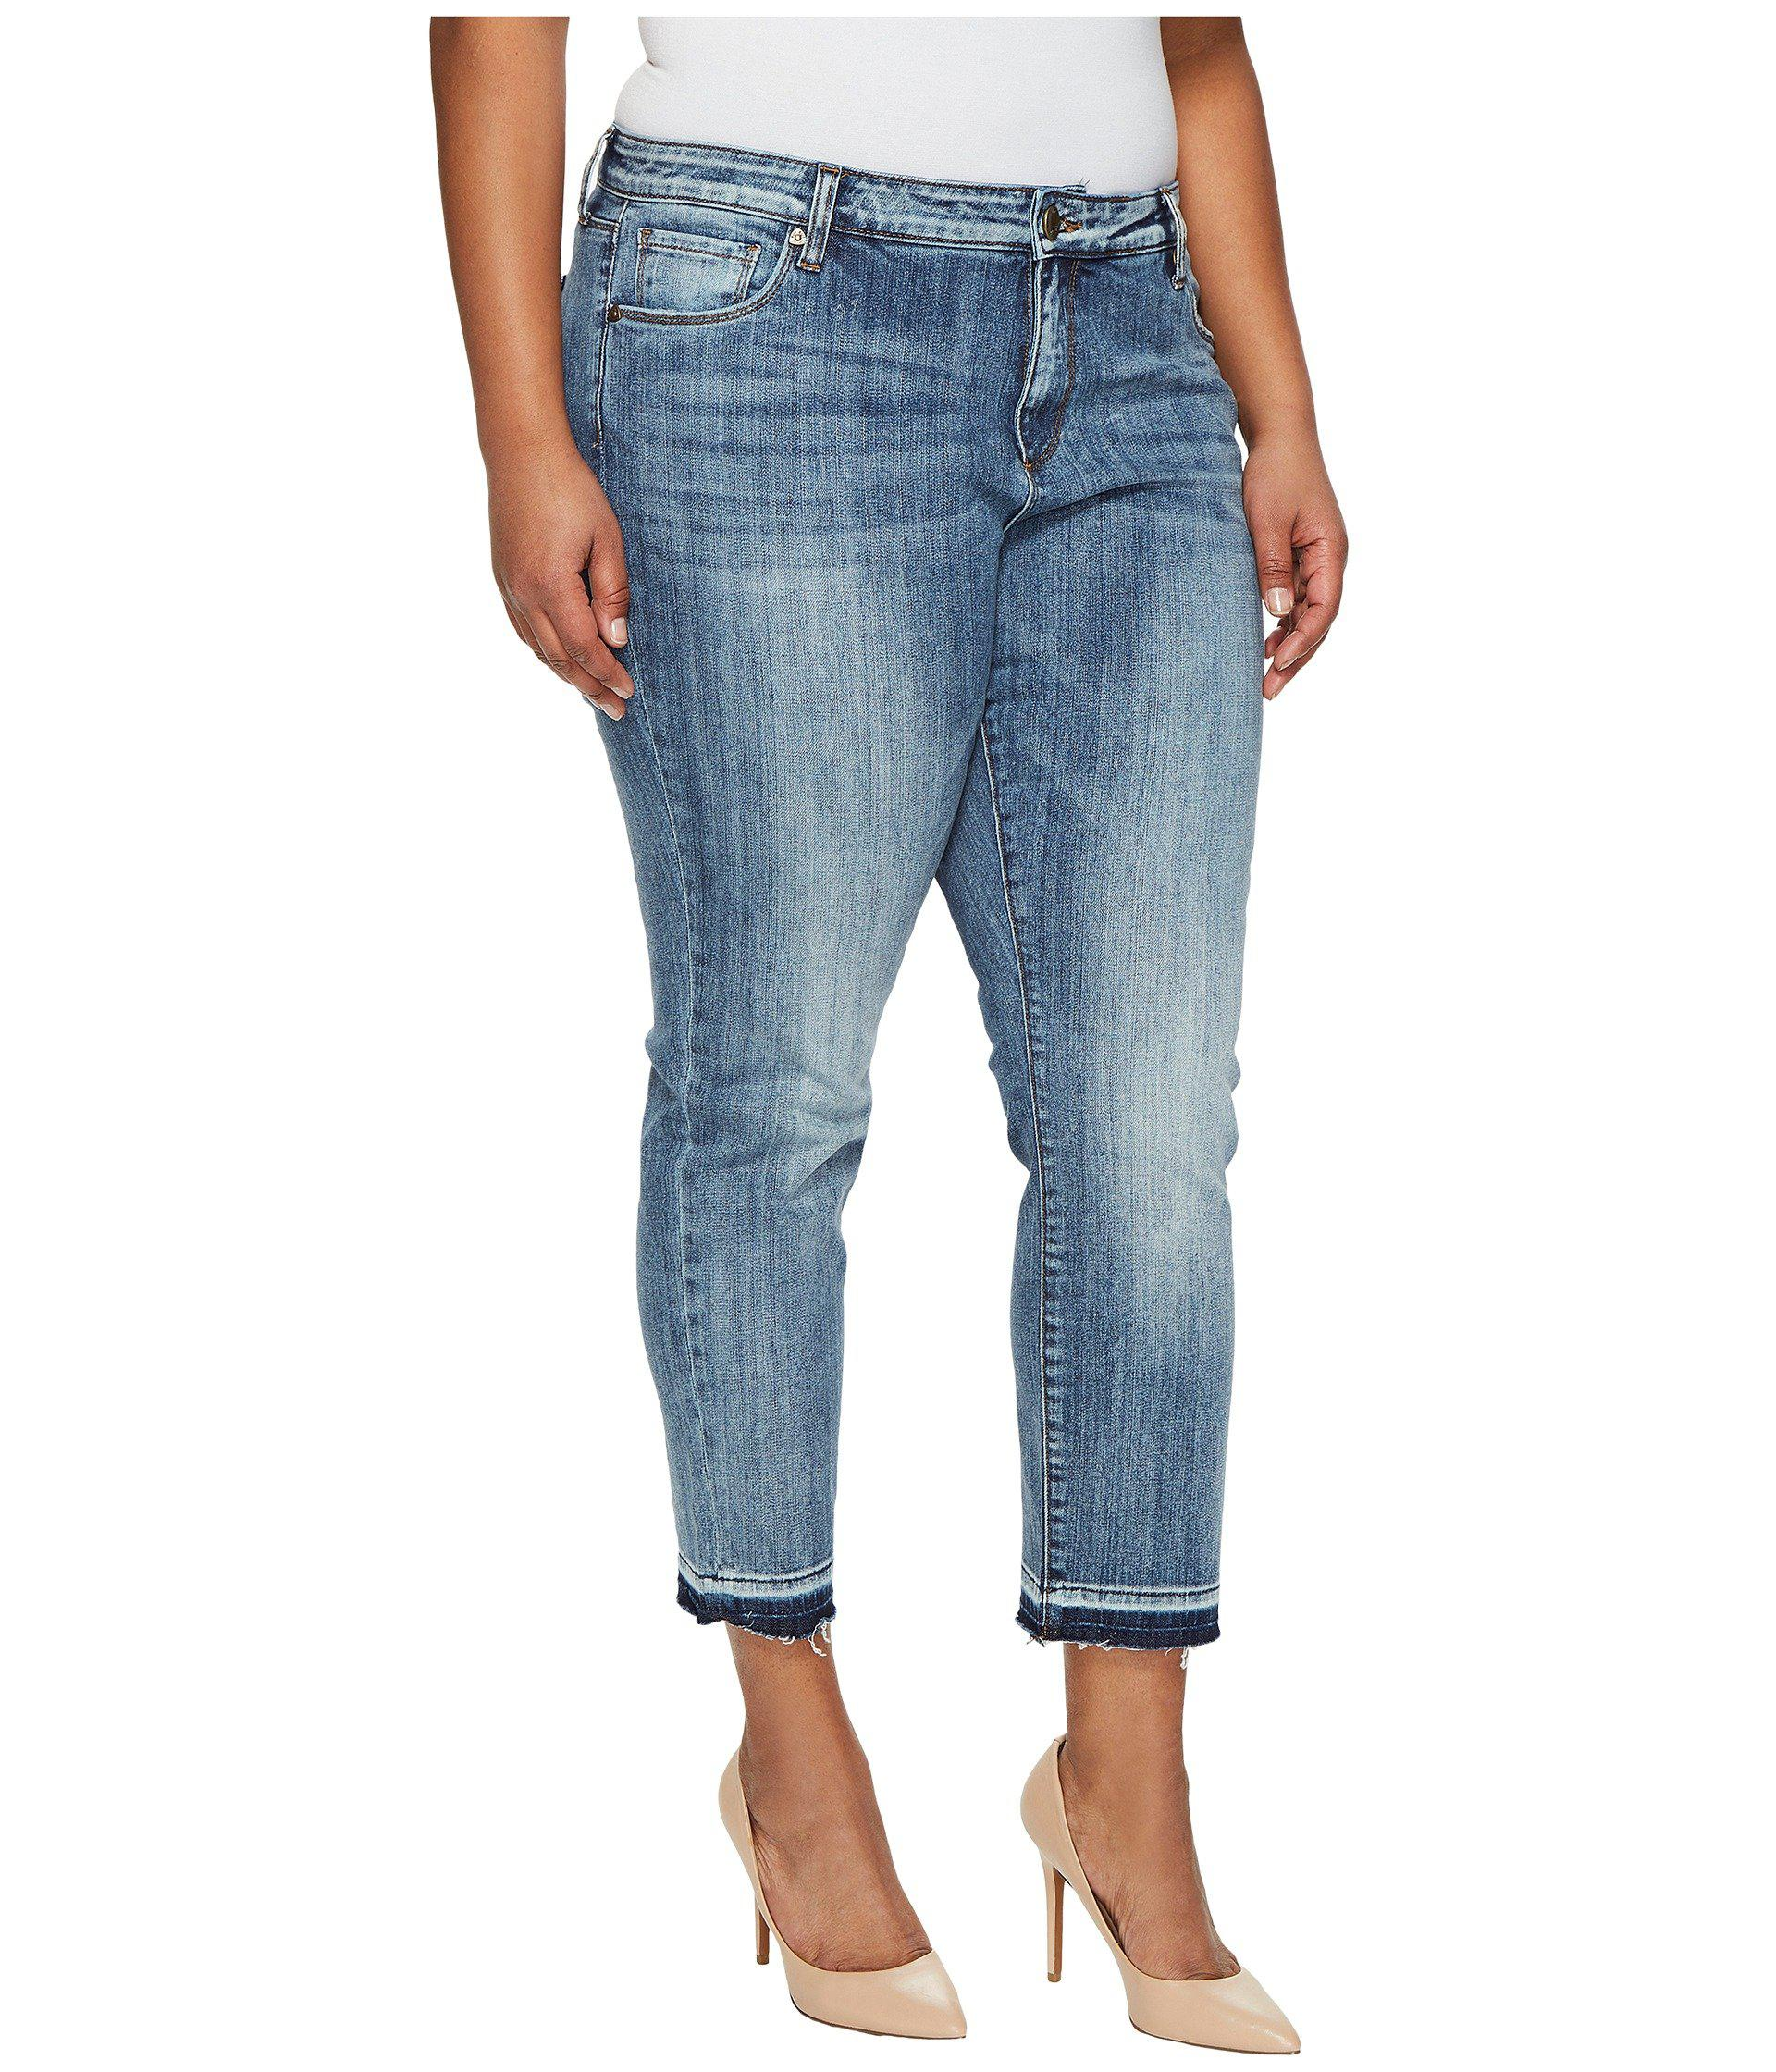 9fb9114f313 Lyst - Kut From The Kloth Plus Size Reese Ankle Straight Leg In ...